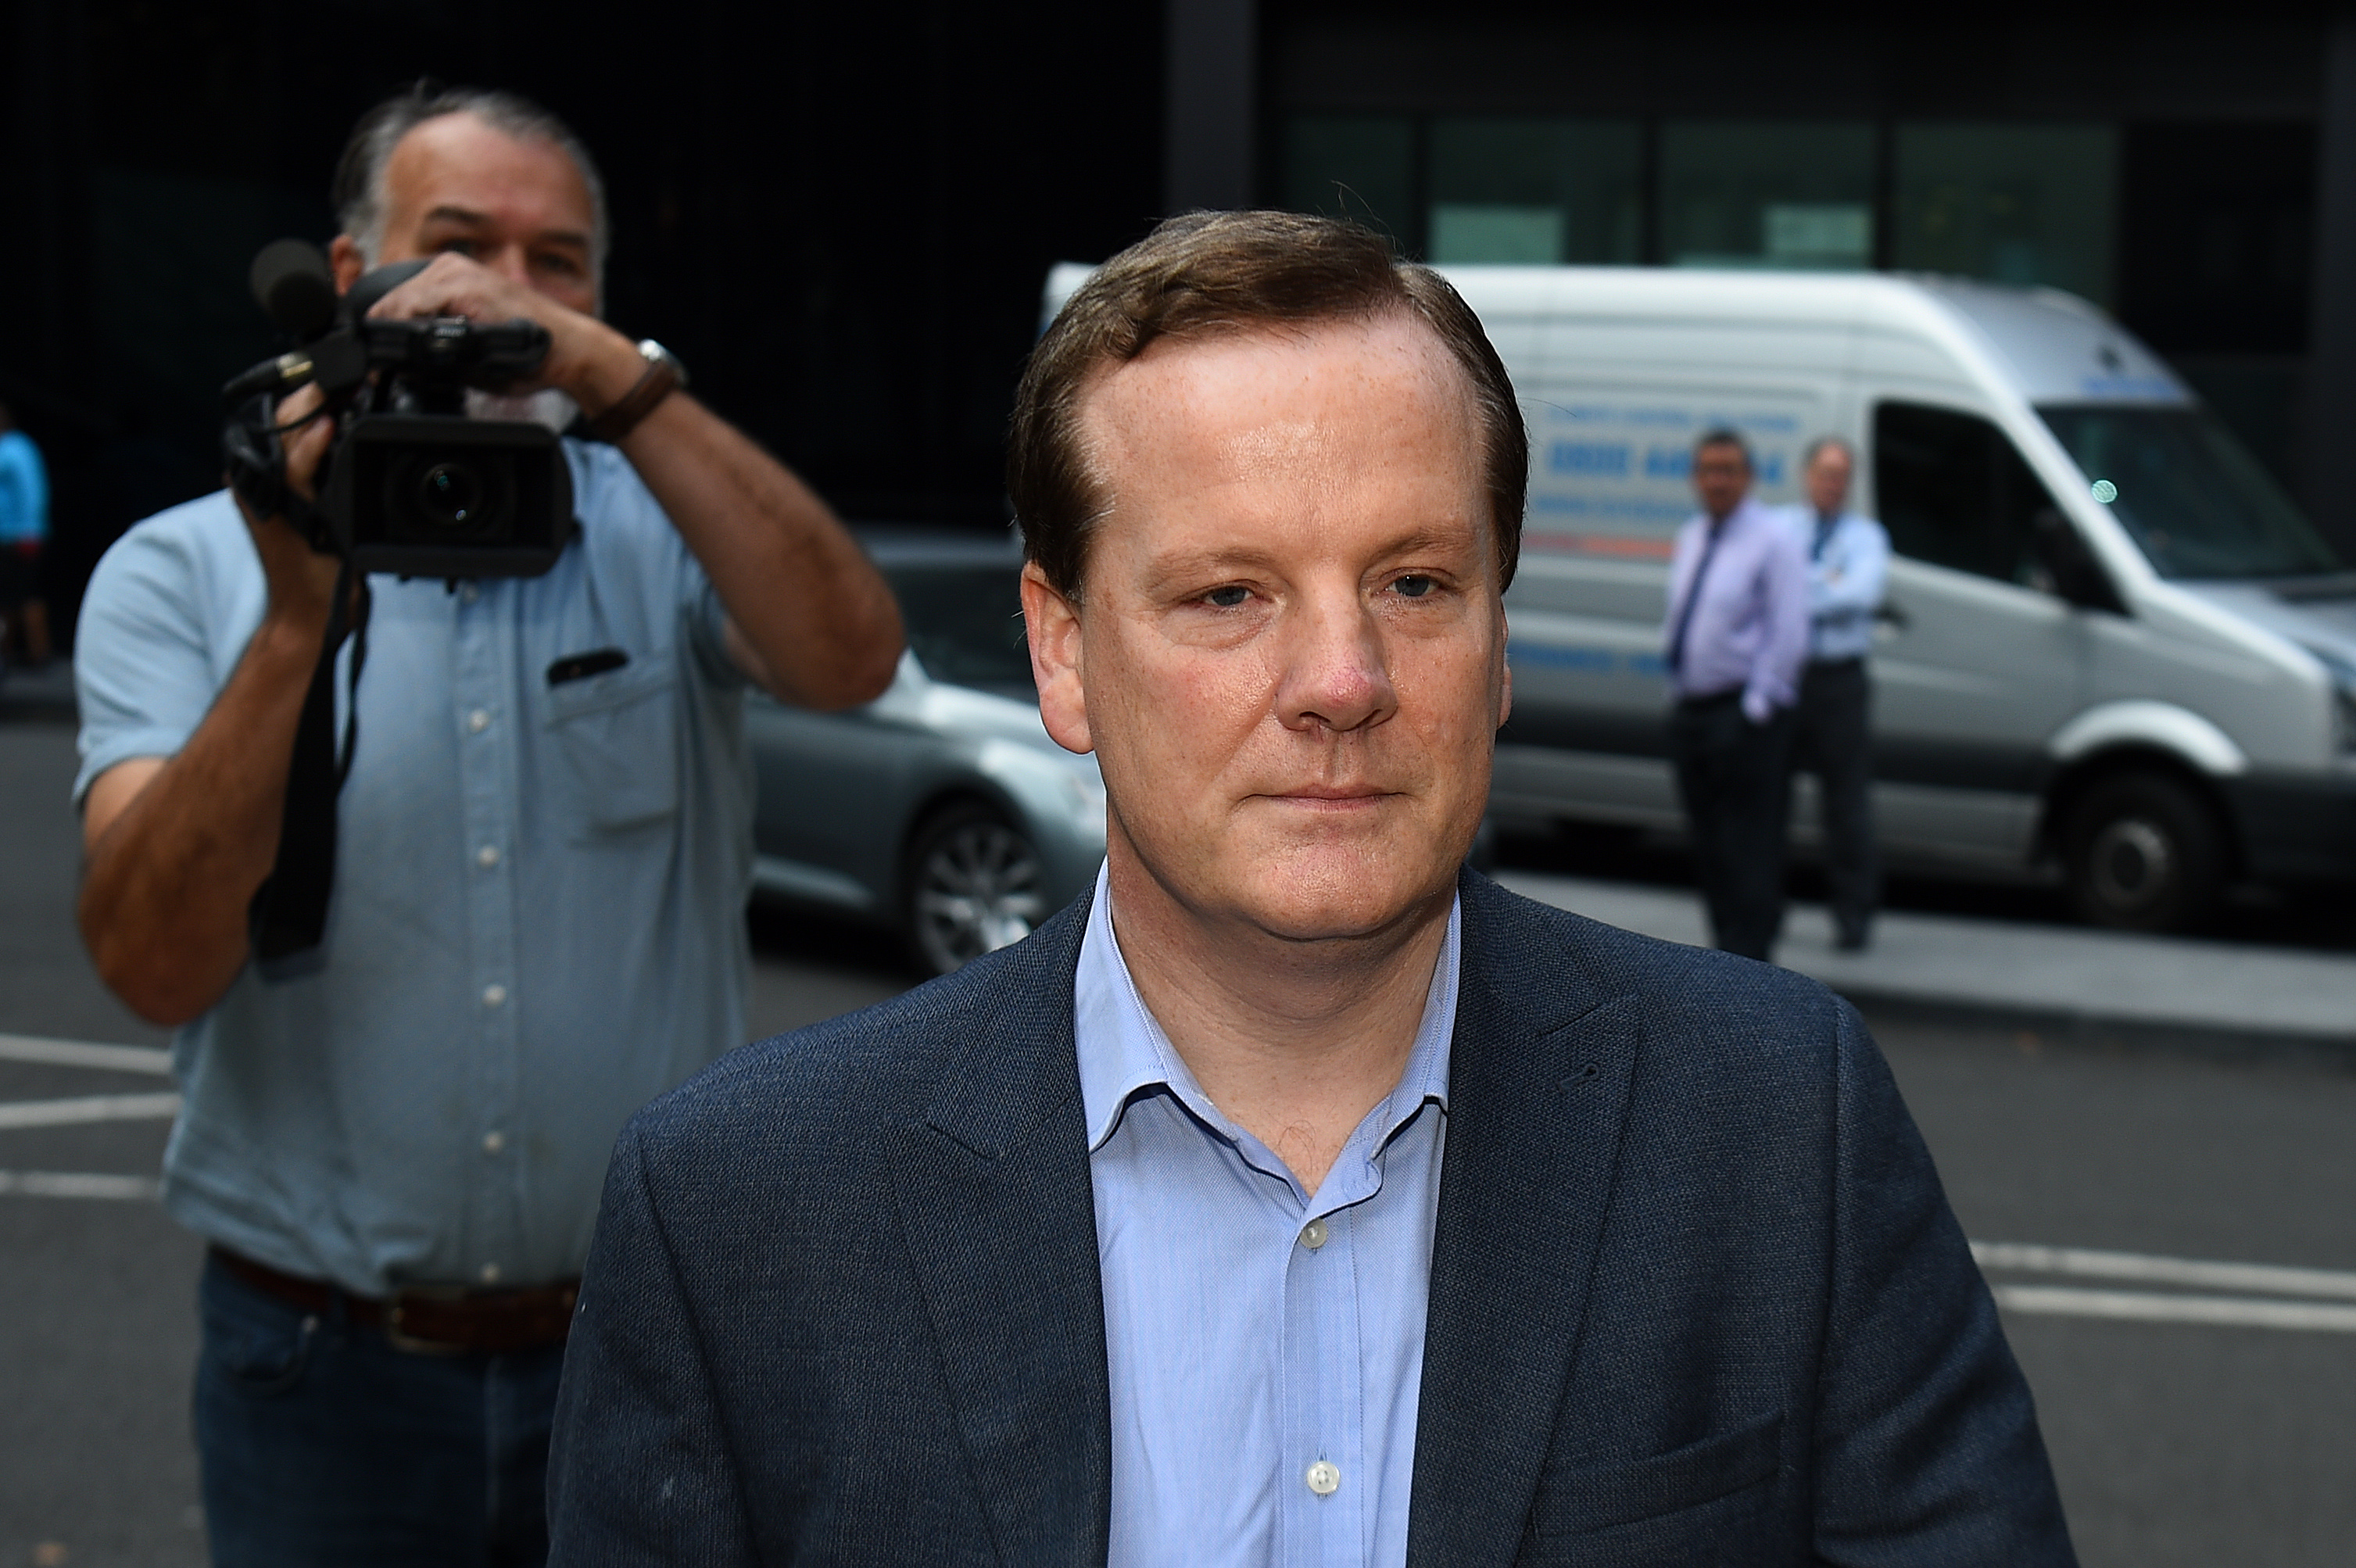 Naughty Tory Charlie Elphicke Jailed For Two Years For